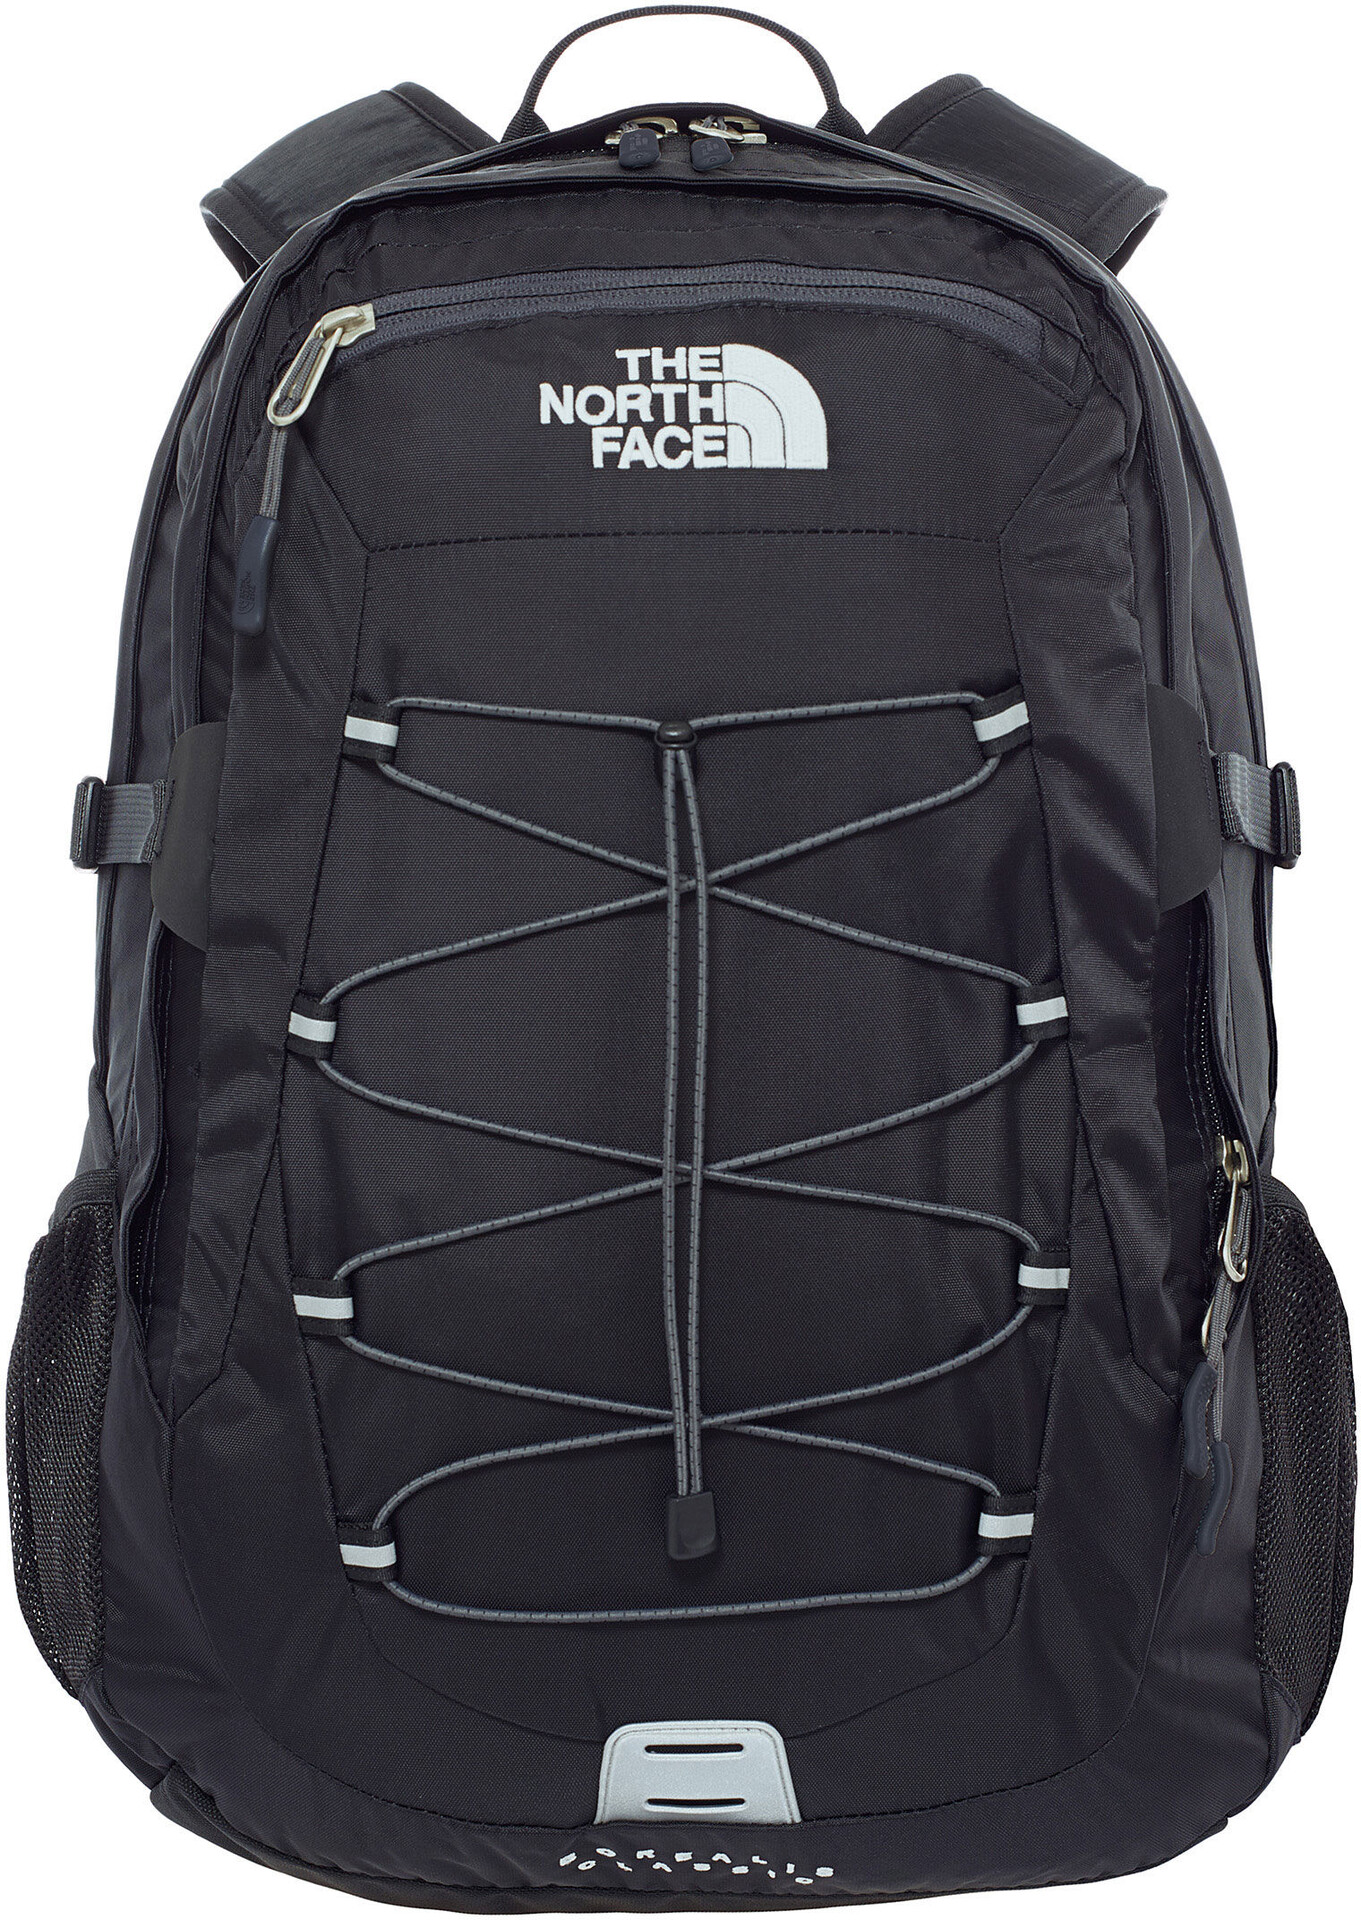 Blackasphalt The 29lTnf Classic Face Borealis Grey Backpack North wZiTkuOPX